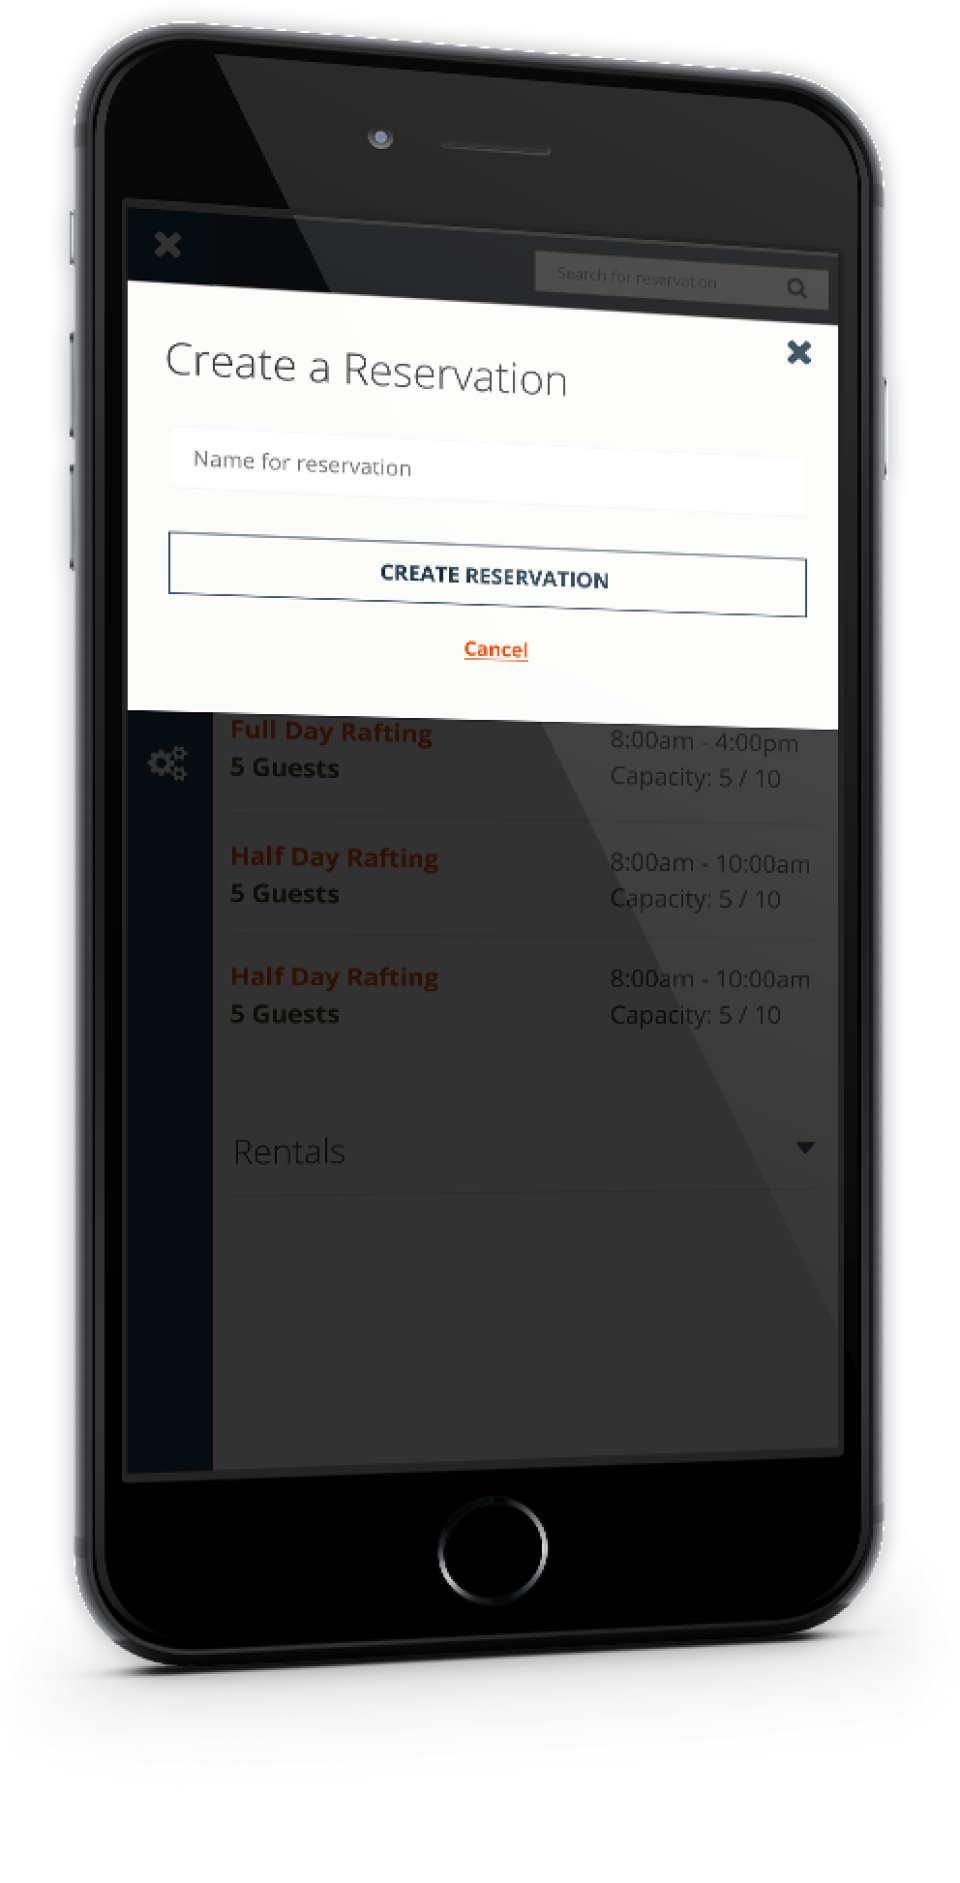 A mobile-friendly online reservation widget helps to maximize conversion rates, while The Flybook also provides guests with optimized dashboards managing large groups and collecting payments